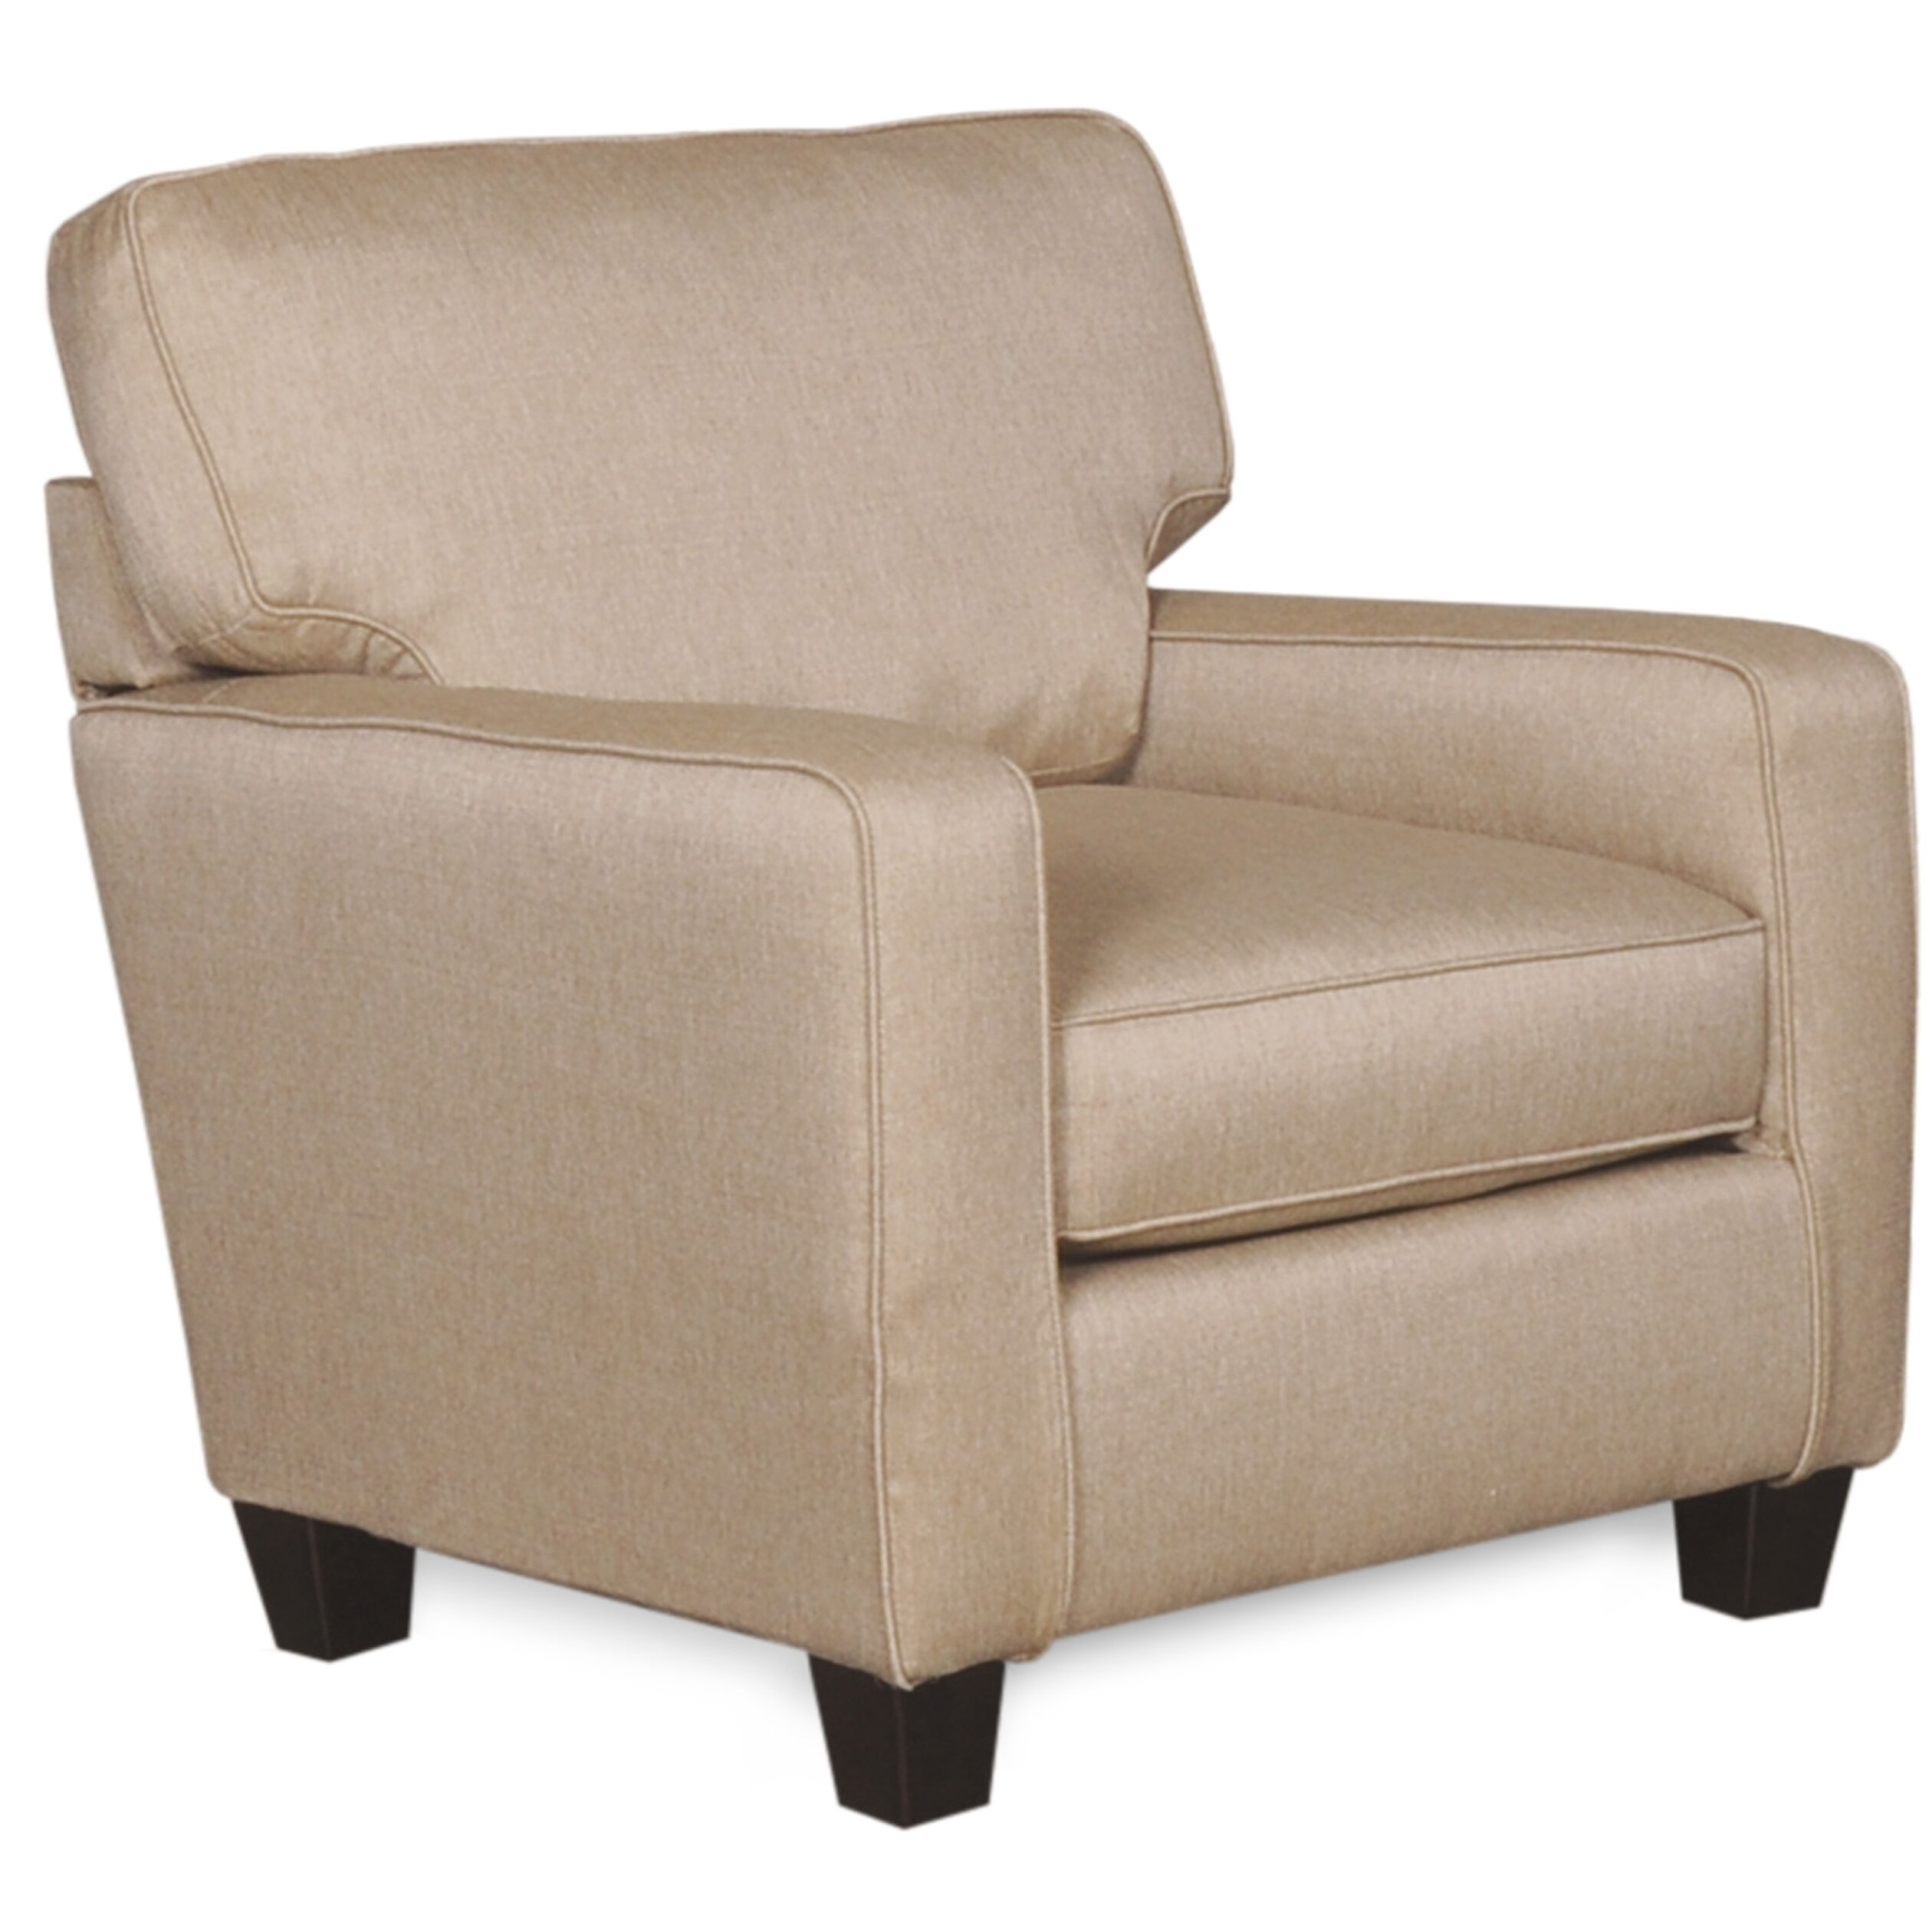 Andover Mills Furniture Review